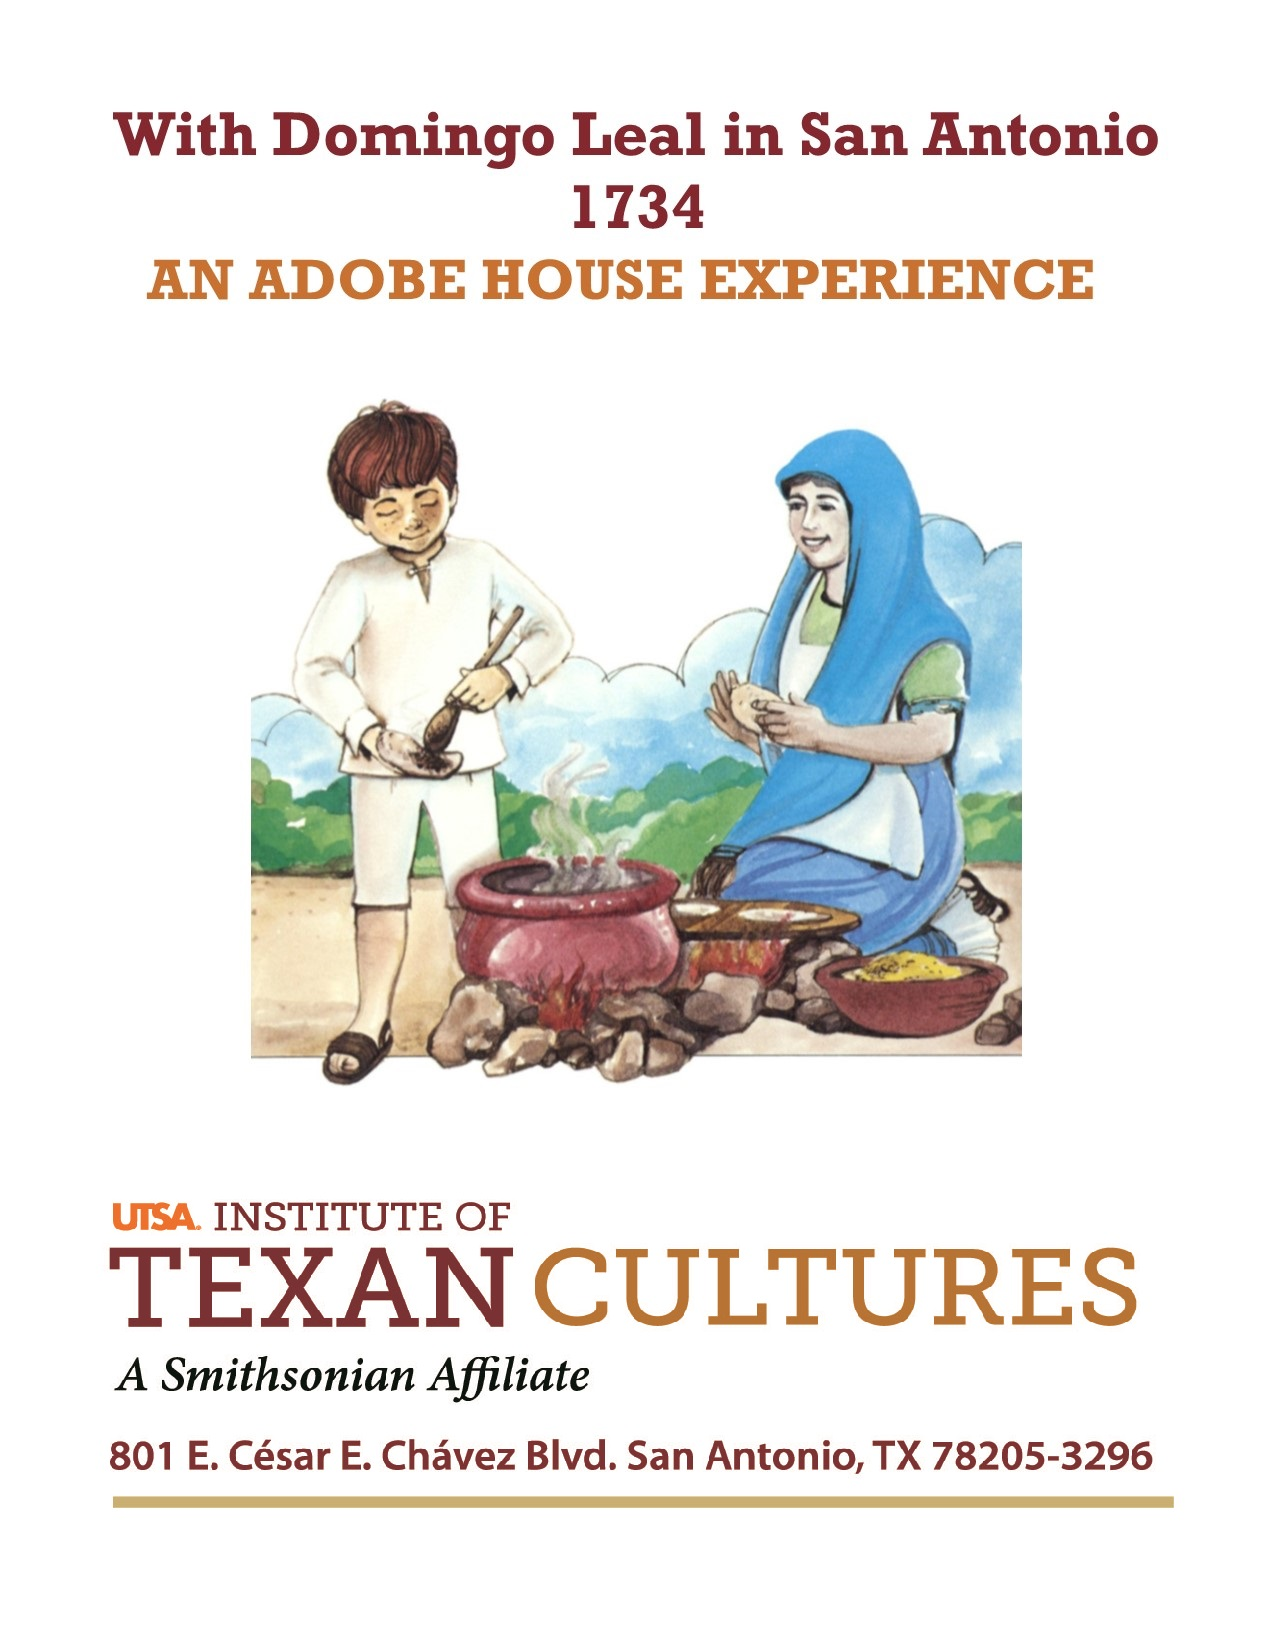 With Domingo Leal in San Antonio, 1734  | UTSA Institute Of Texan Cultures